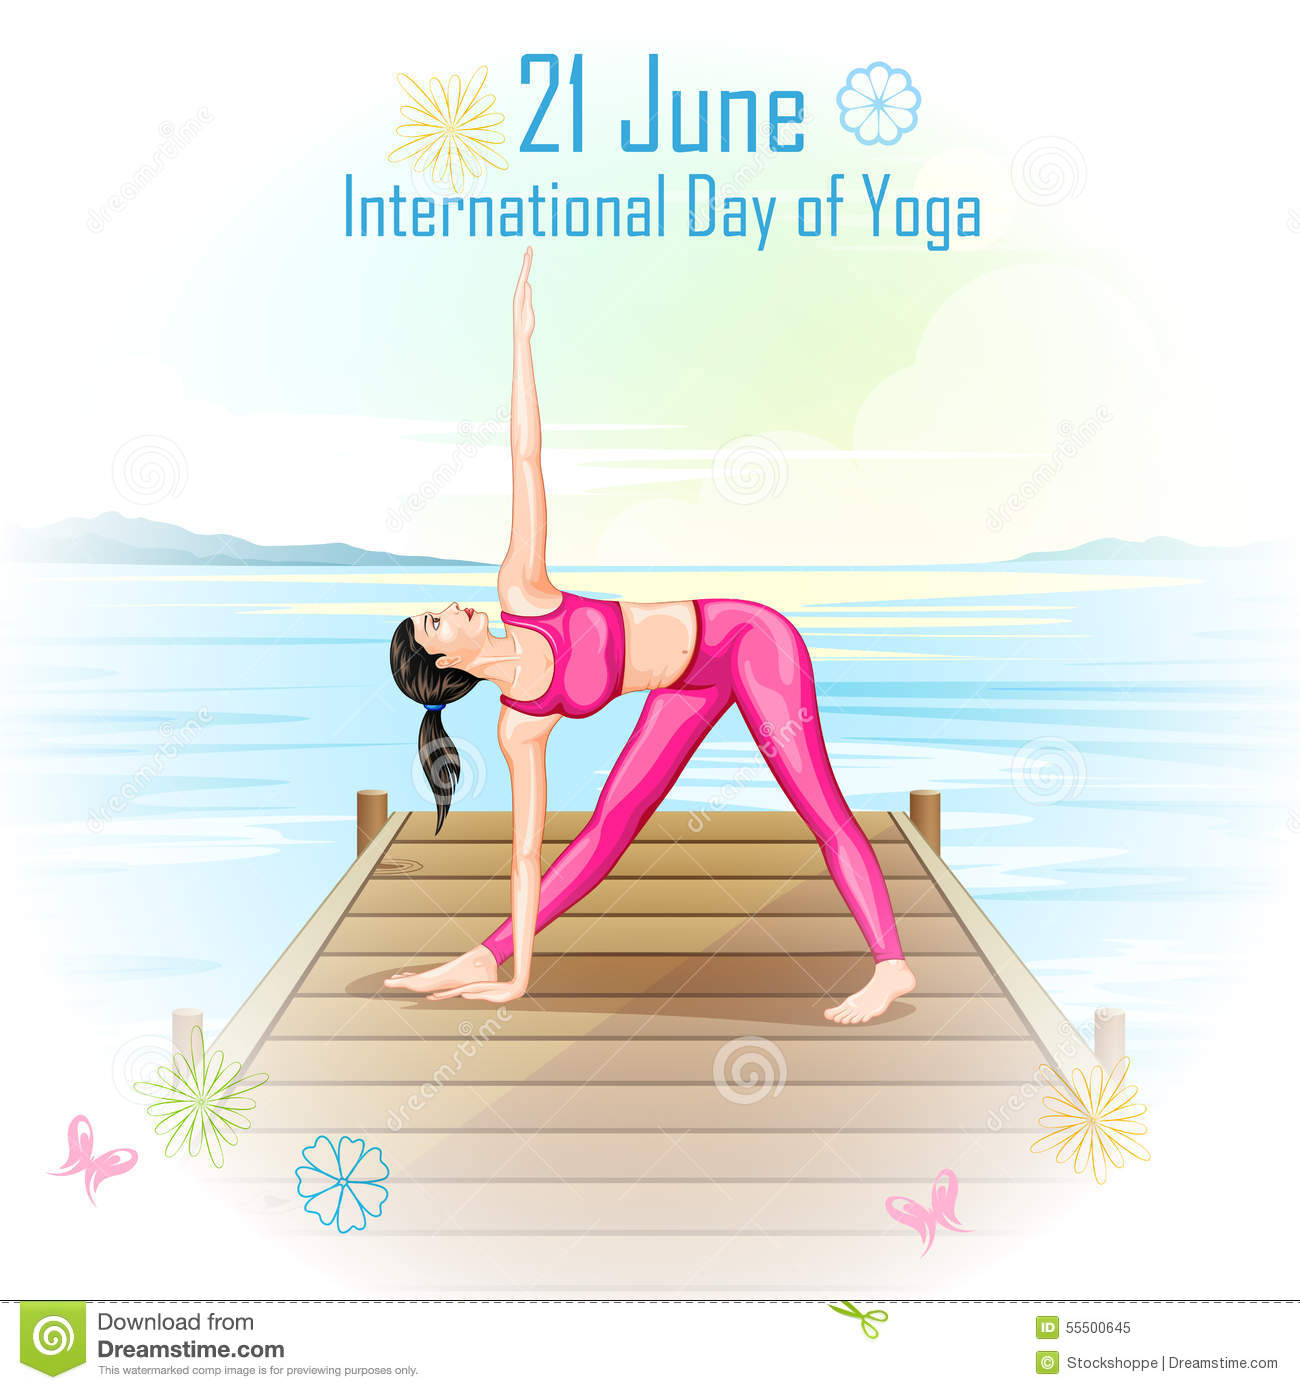 Poster design yoga - International Yoga Day Royalty Free Stock Photo